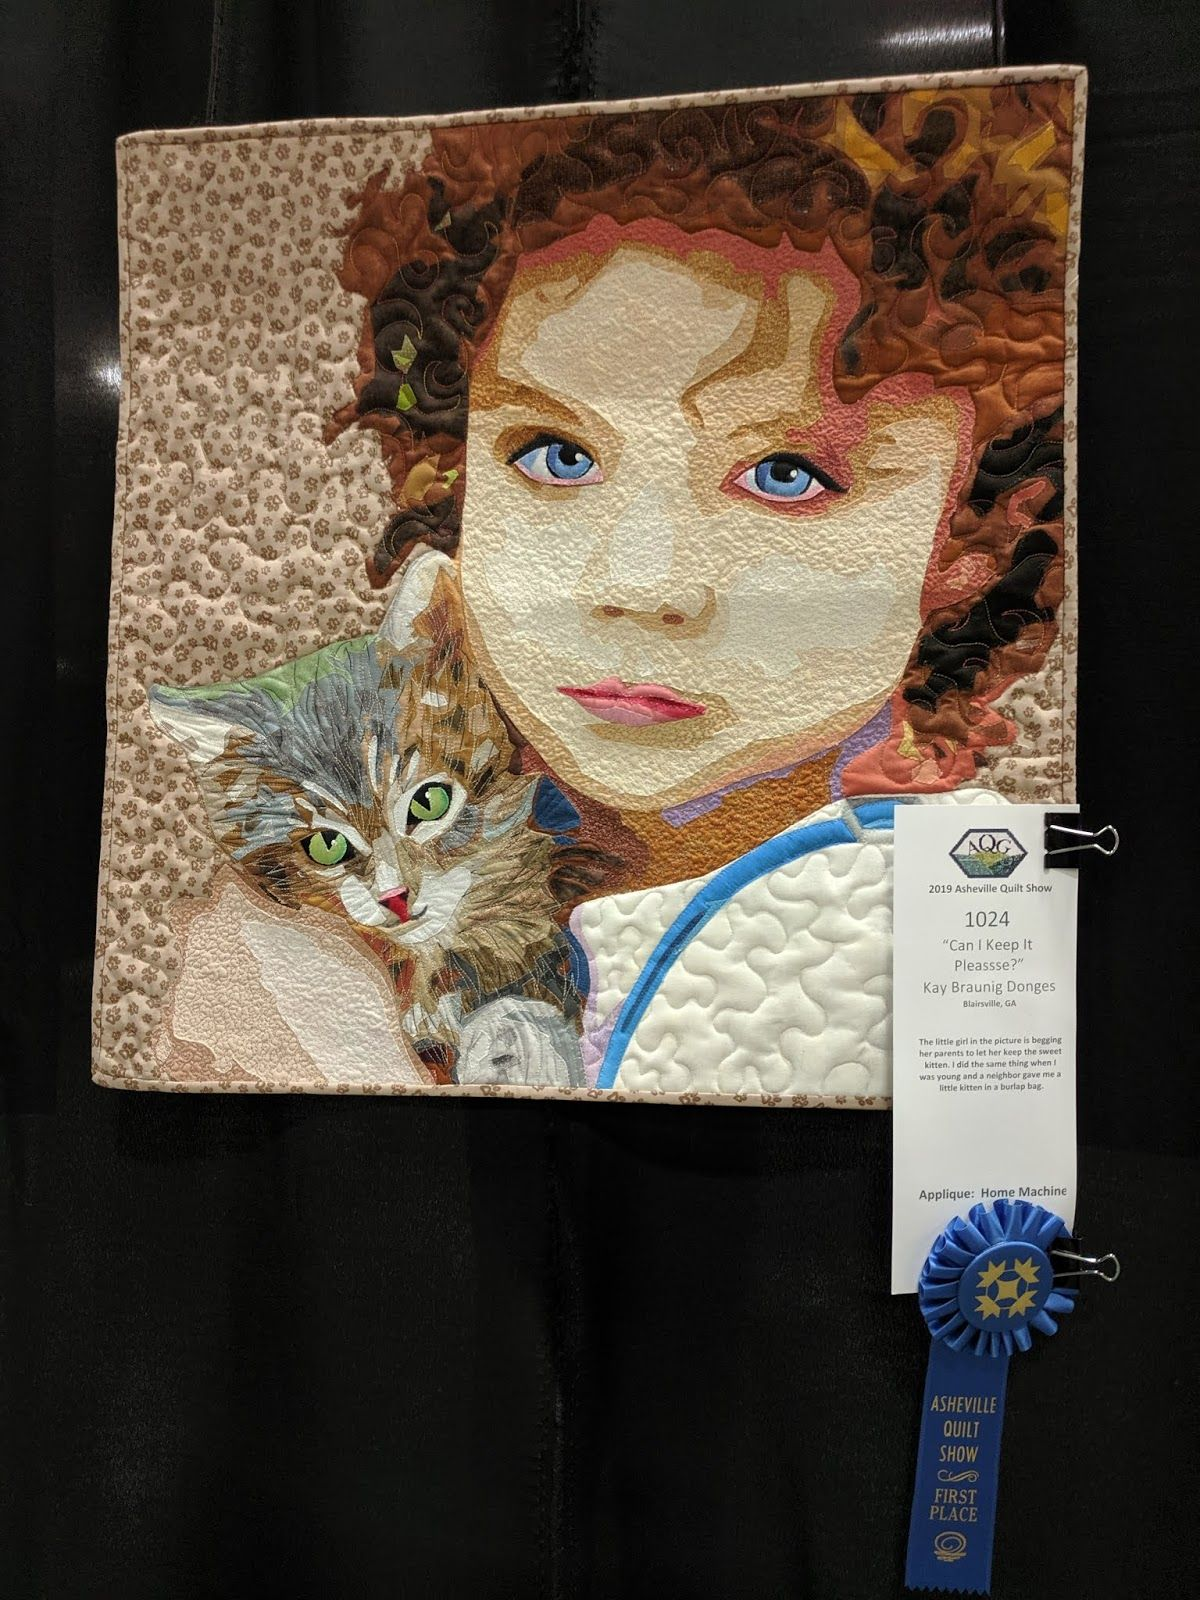 This Was My Favorite Quilt In The Show In 2020 The Quilt Show Quilts Quilt Guild